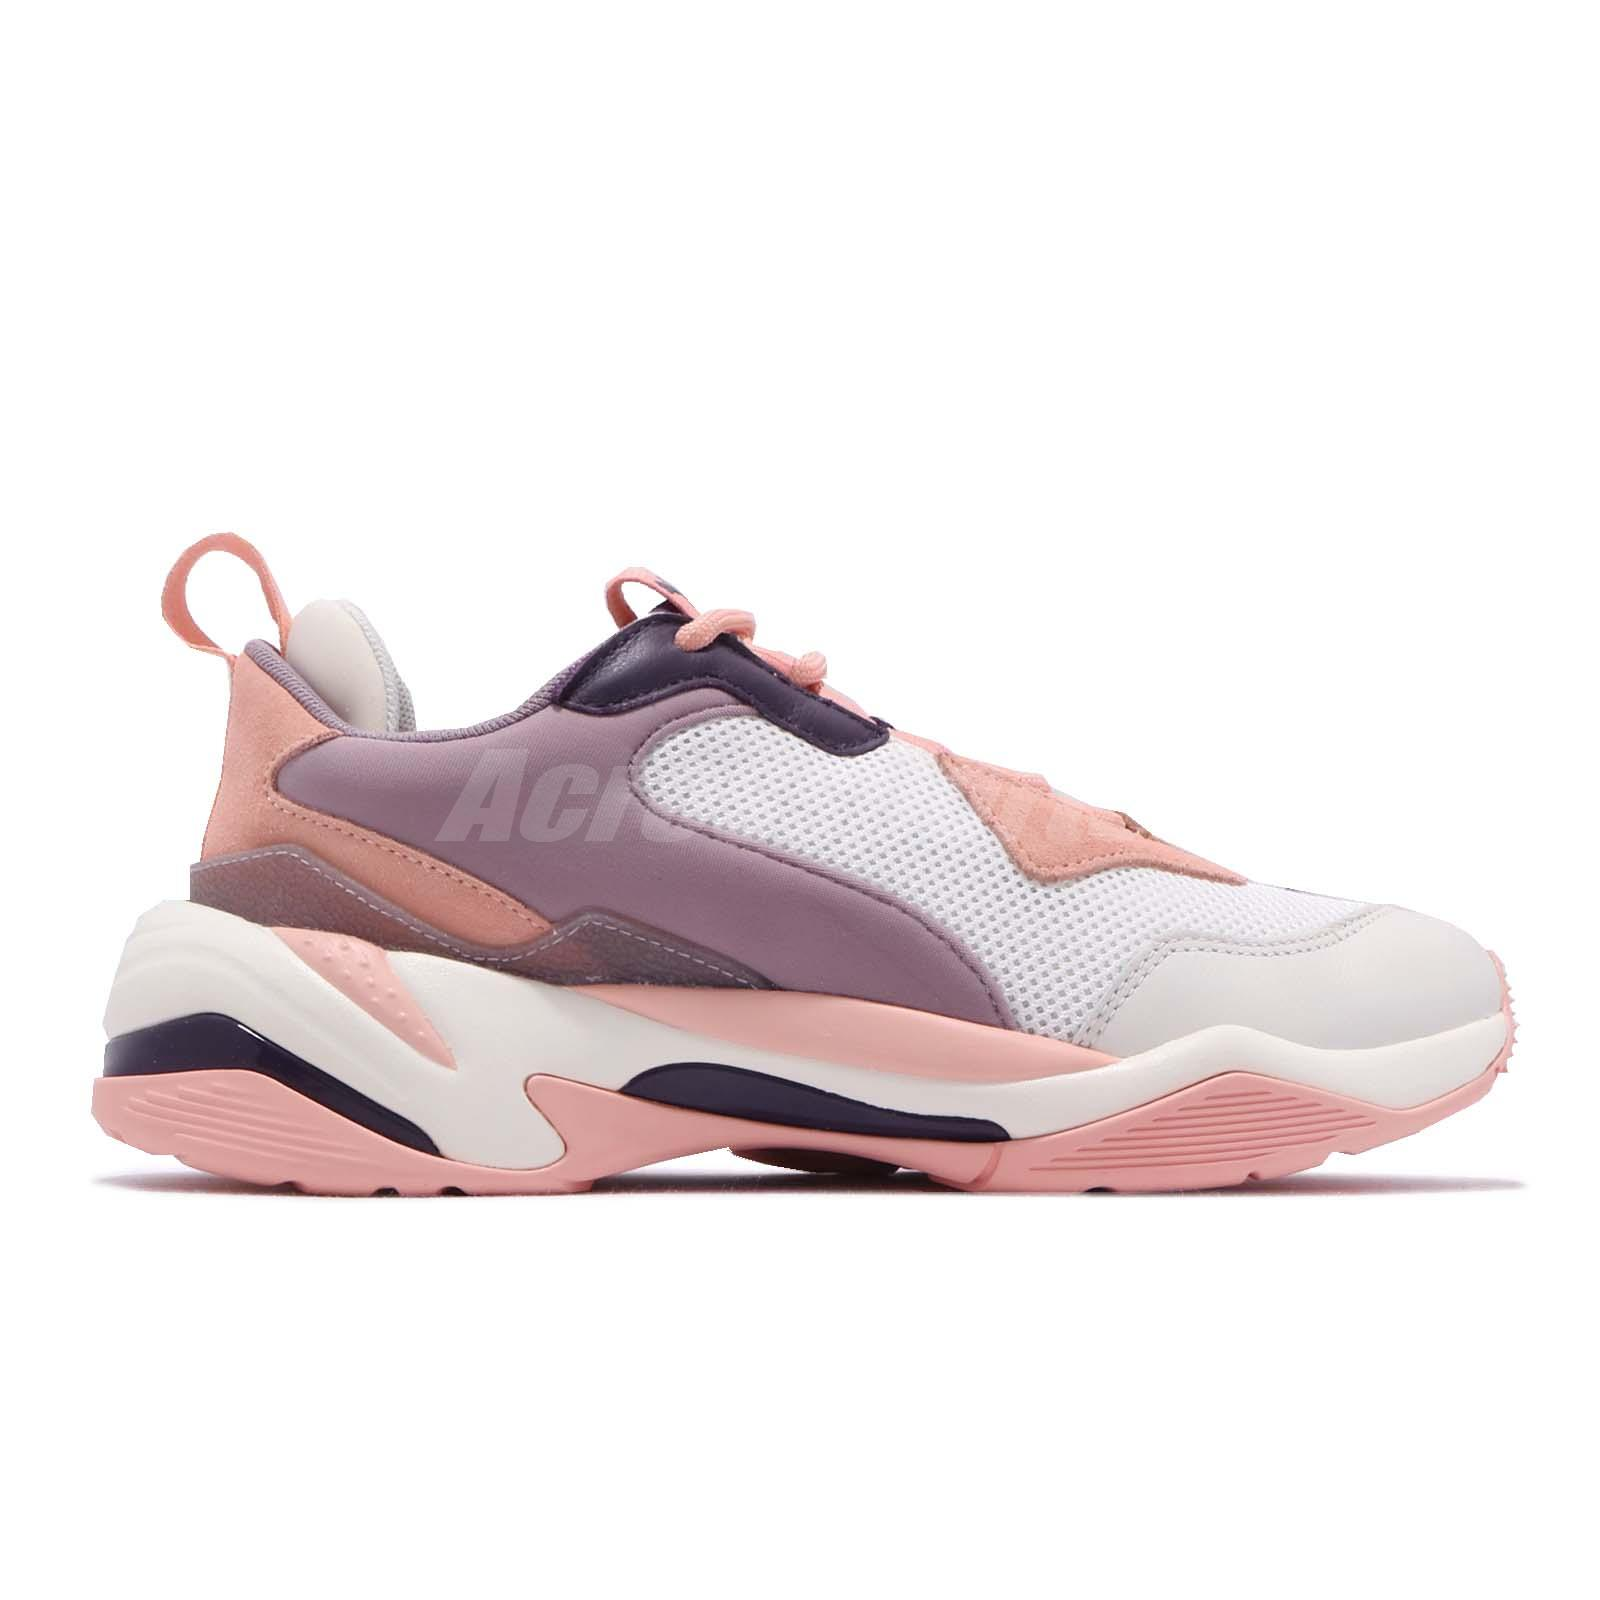 342b5965bf3 Puma Thunder Spectra Marshmallow Peach Bud Men Women Daddy Shoes ...